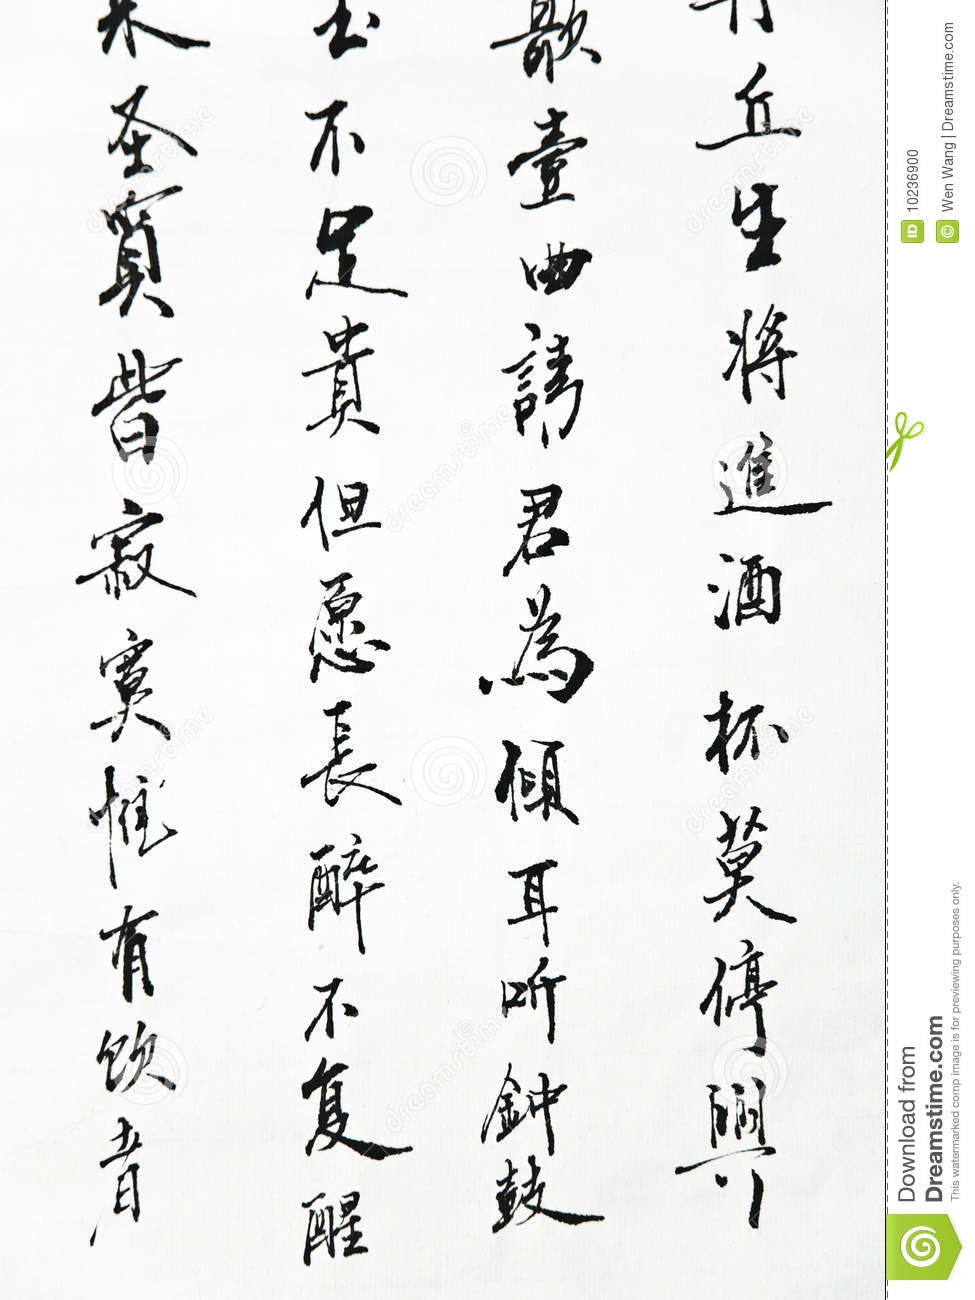 Chinese calligraphy art